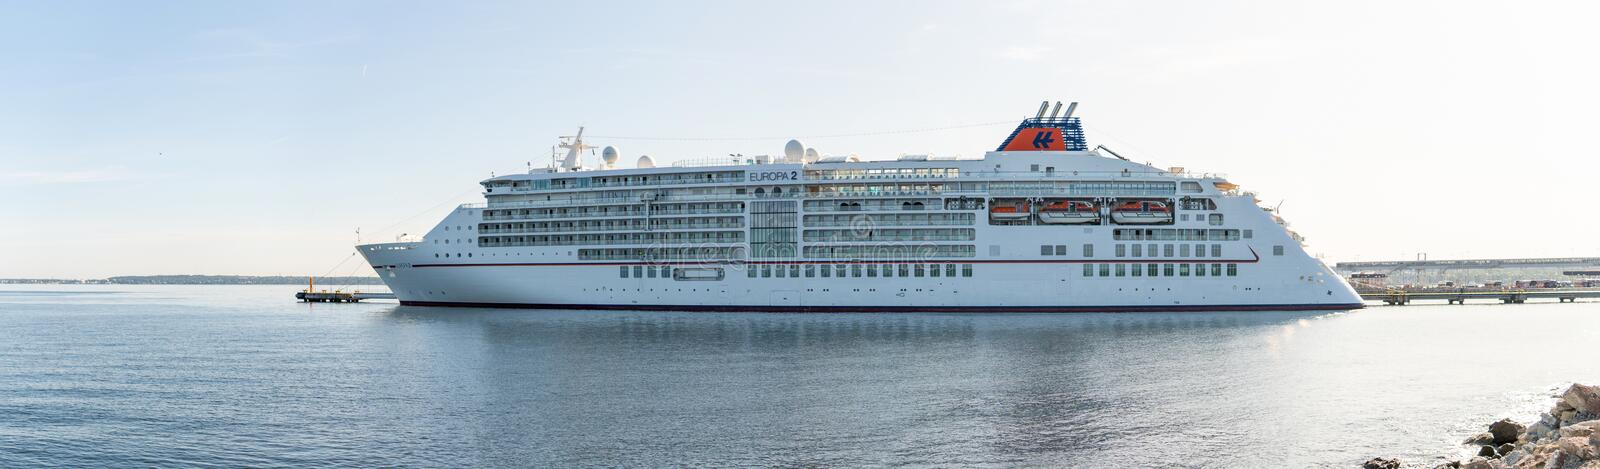 Cruise ship MS Europa 2 of the  Hapag-Lloyd Cruises Fleet docked in Vanasadam royalty free stock photography